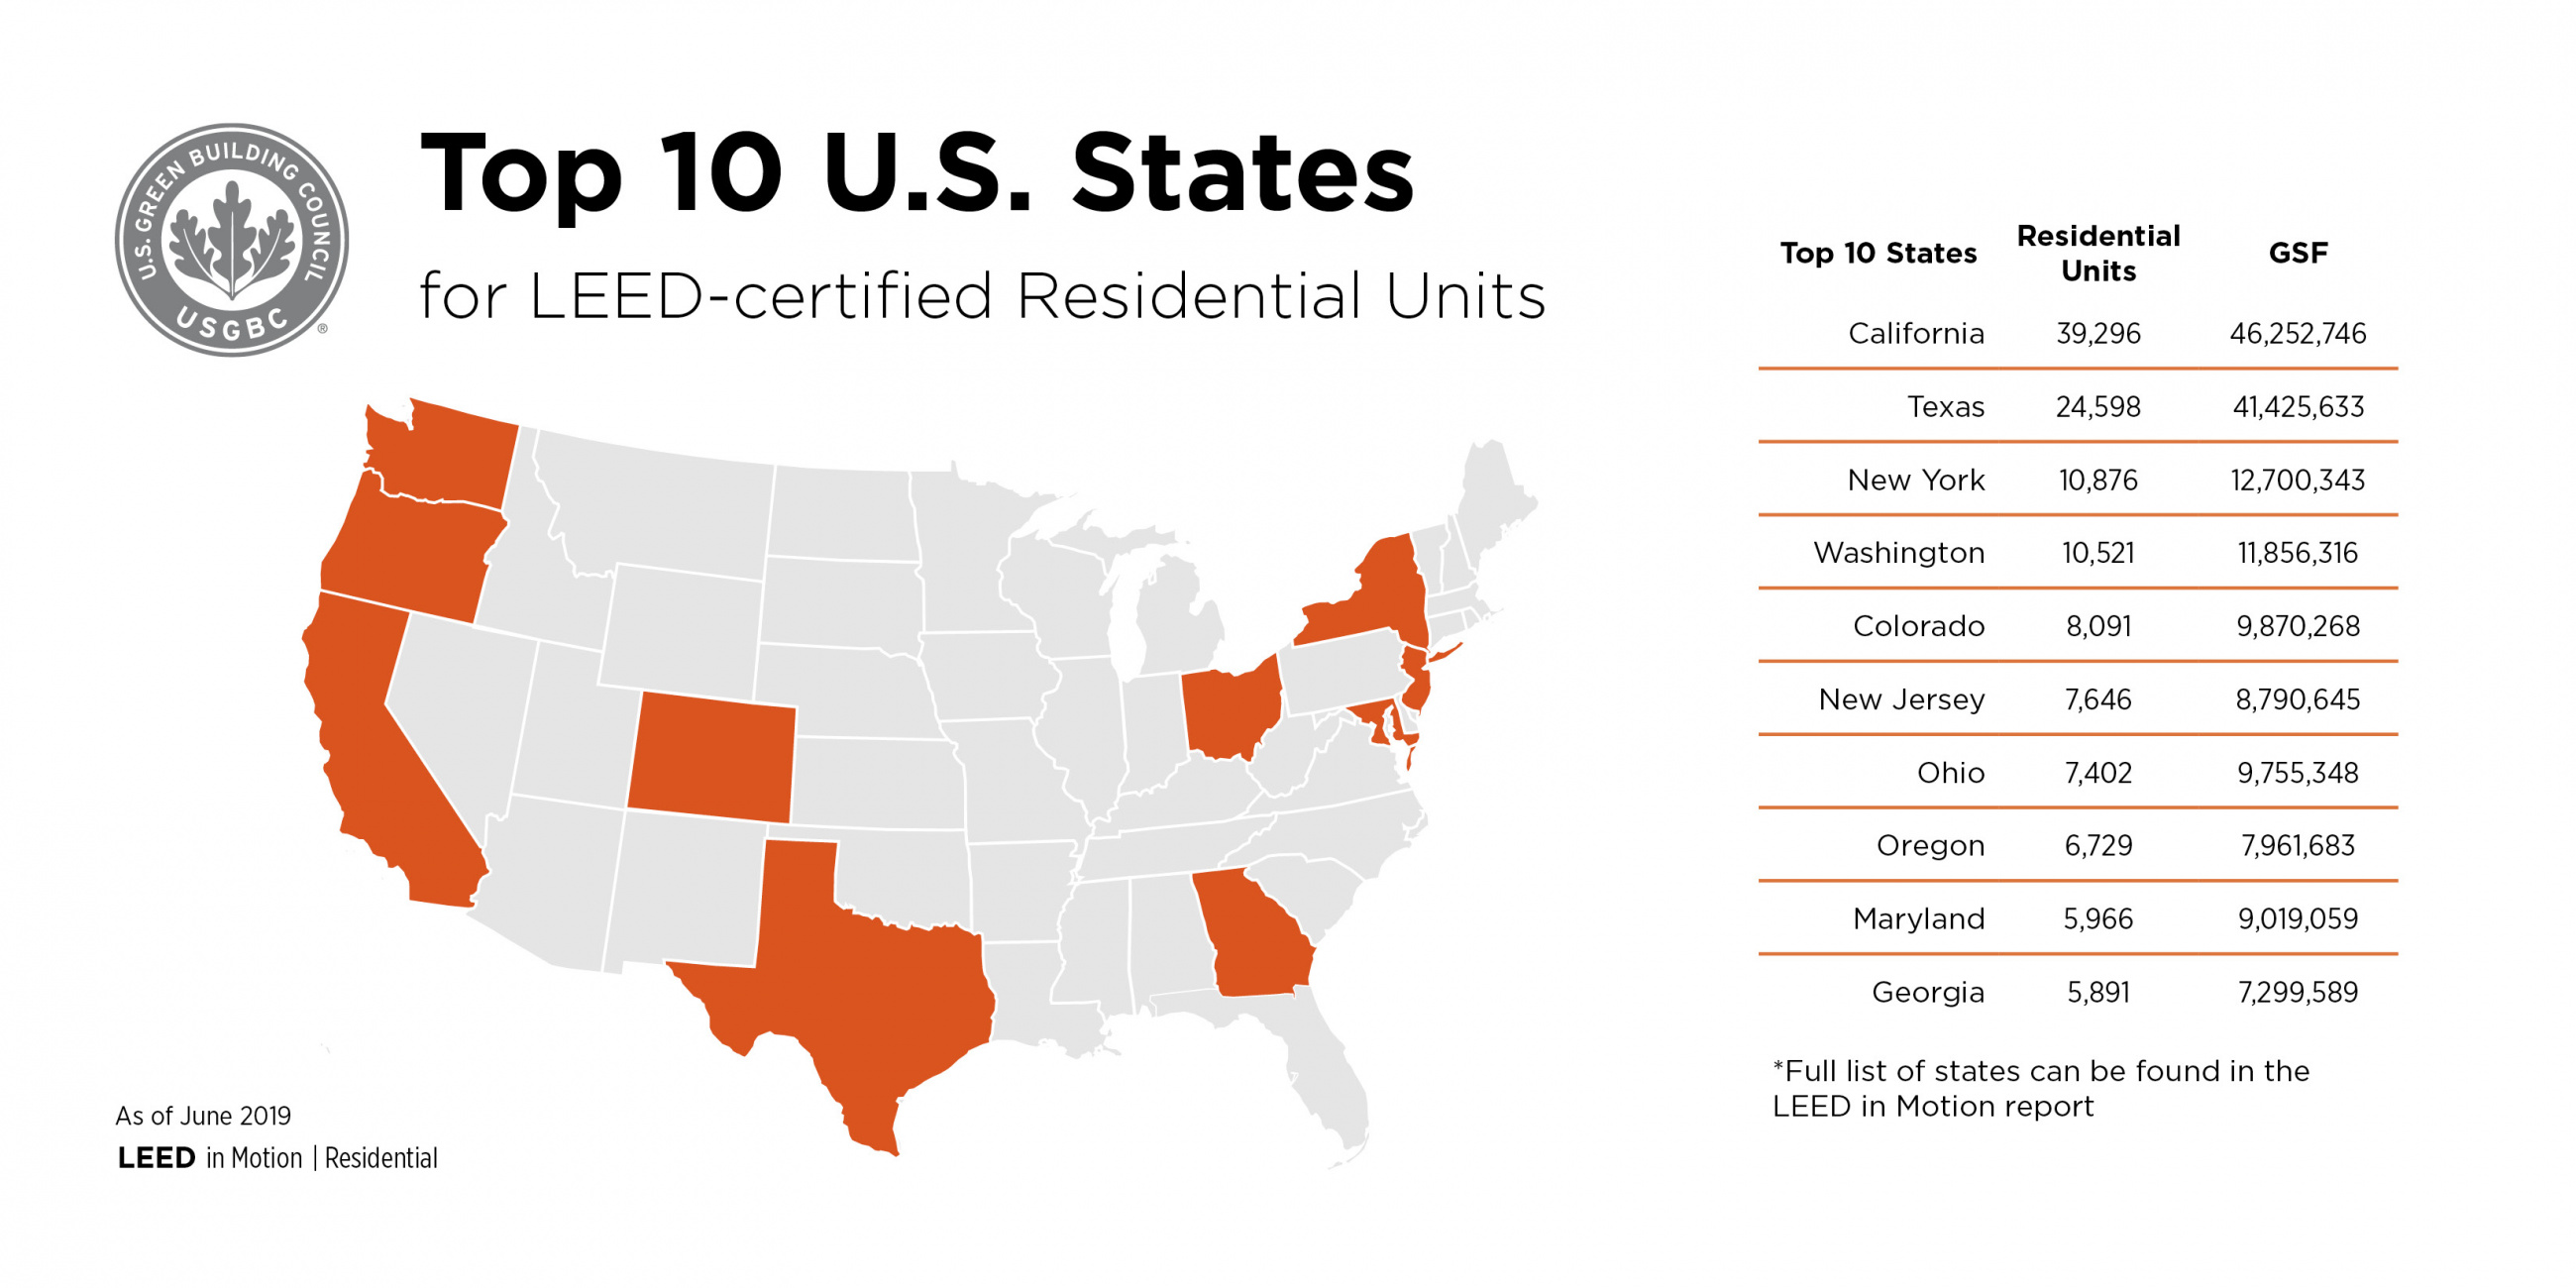 LEED top 20 U.S. states chart. Visit source link at the end of this article for more information.